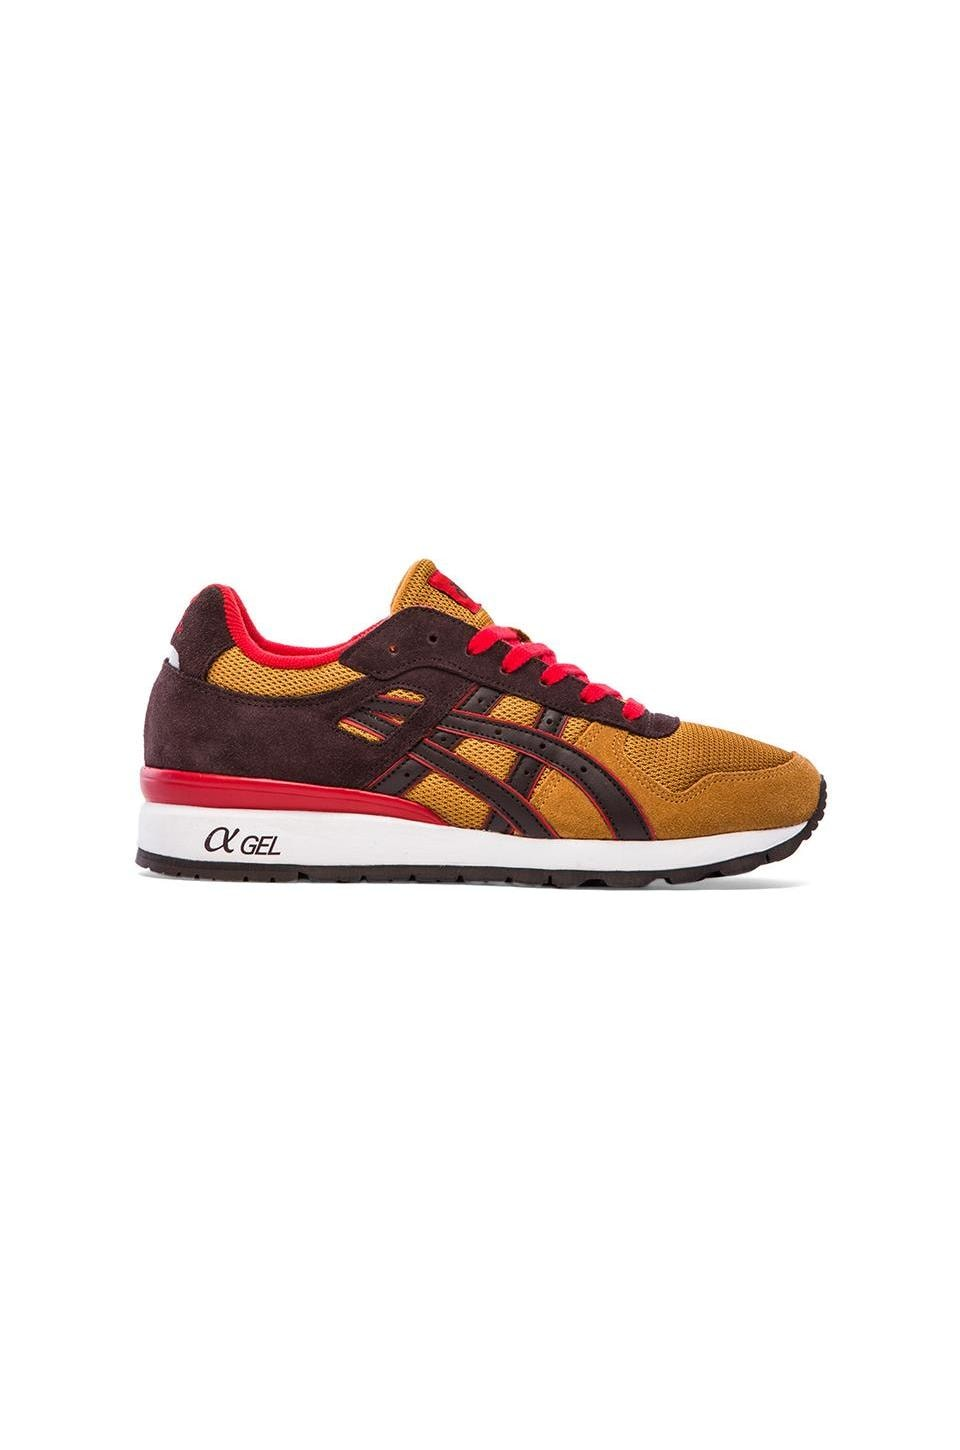 Asics GT-II in Tan 7 Dark Brown